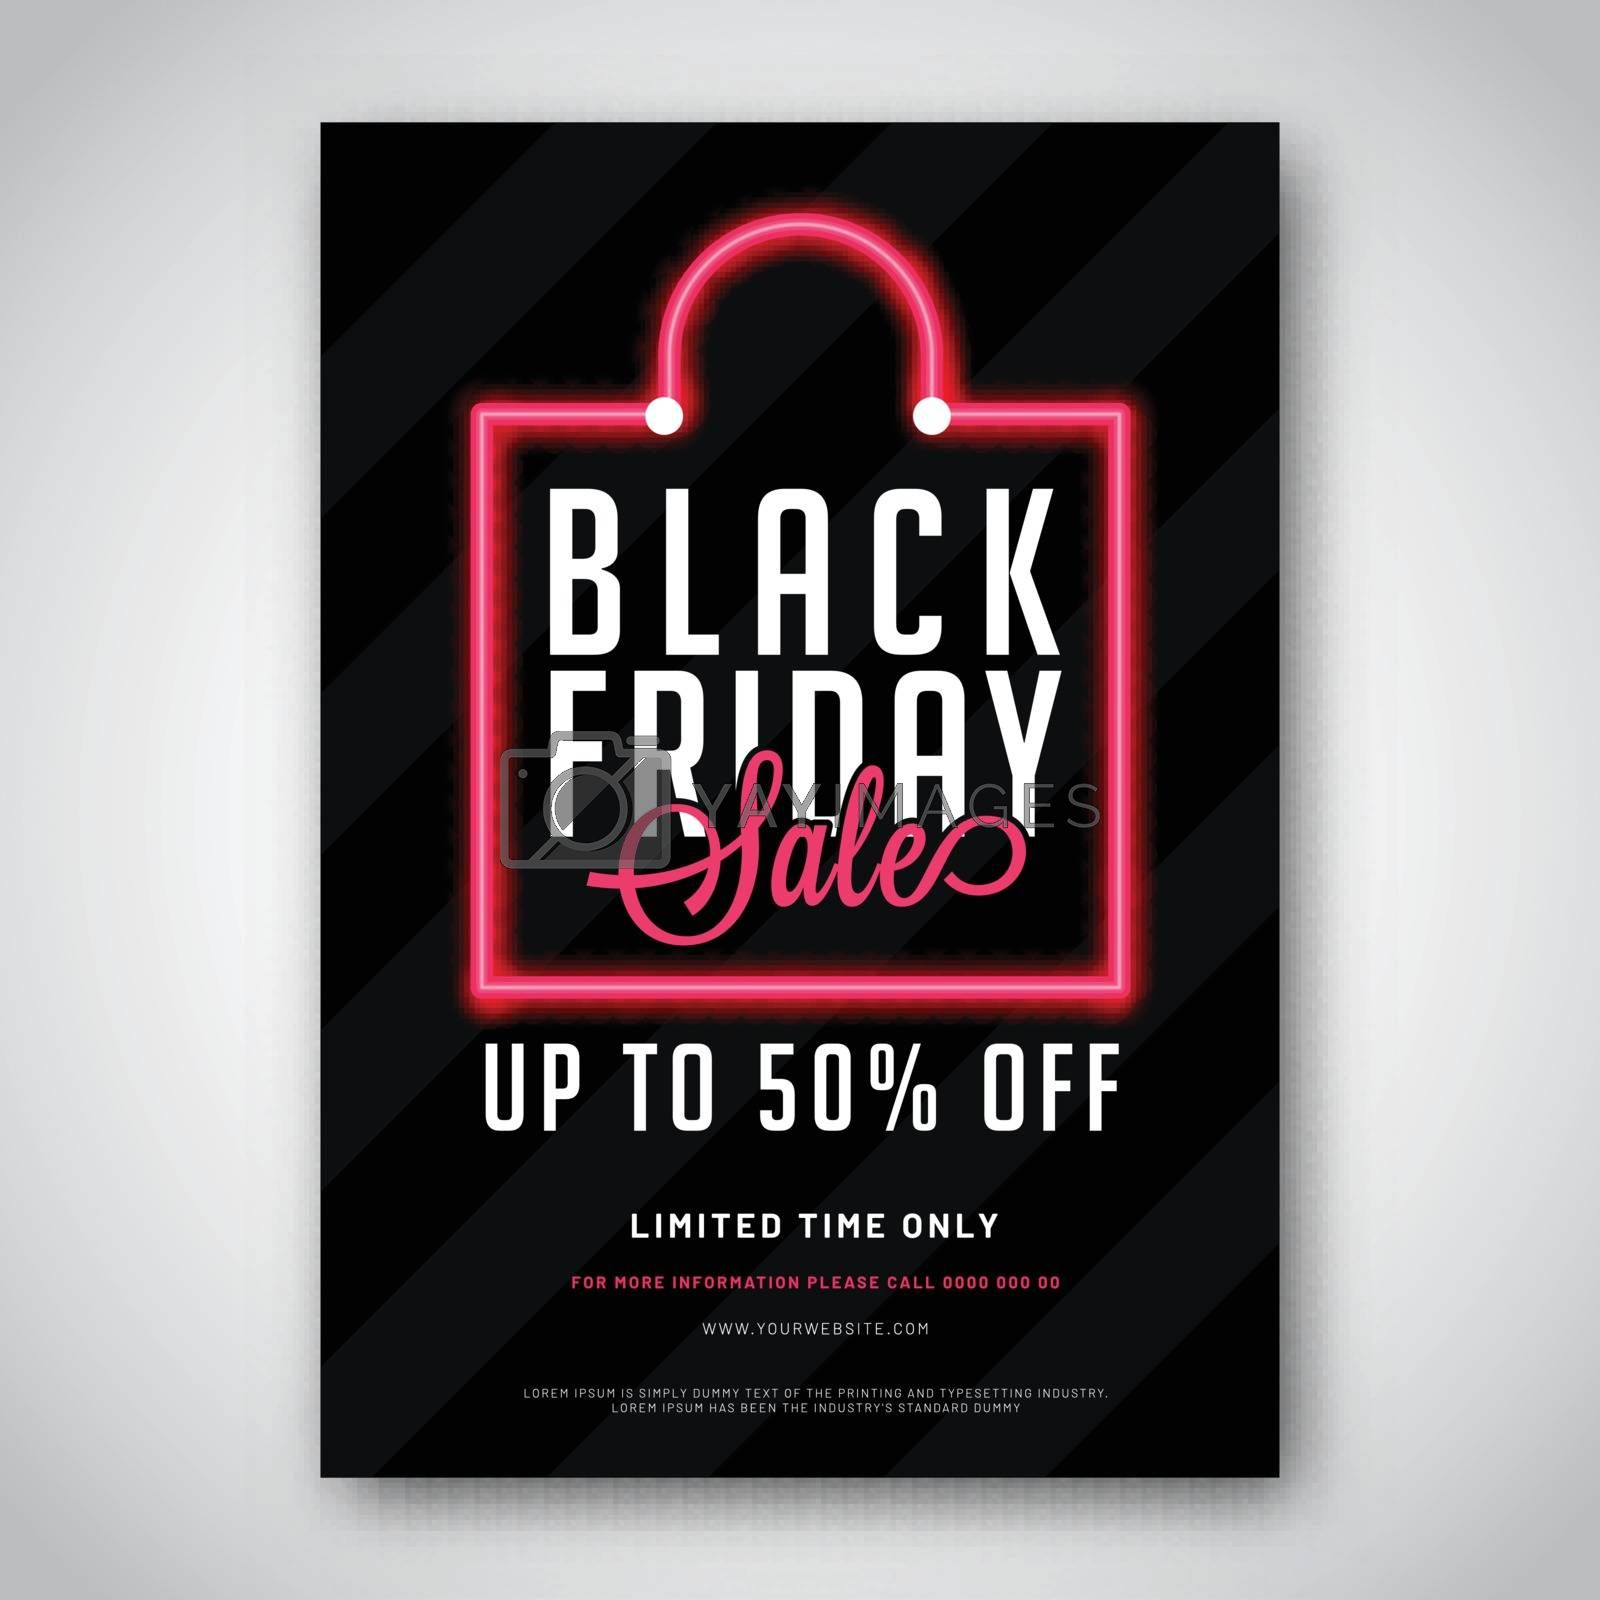 Advertising template or flyer design for Black Friday Sale with 50% discount offer.